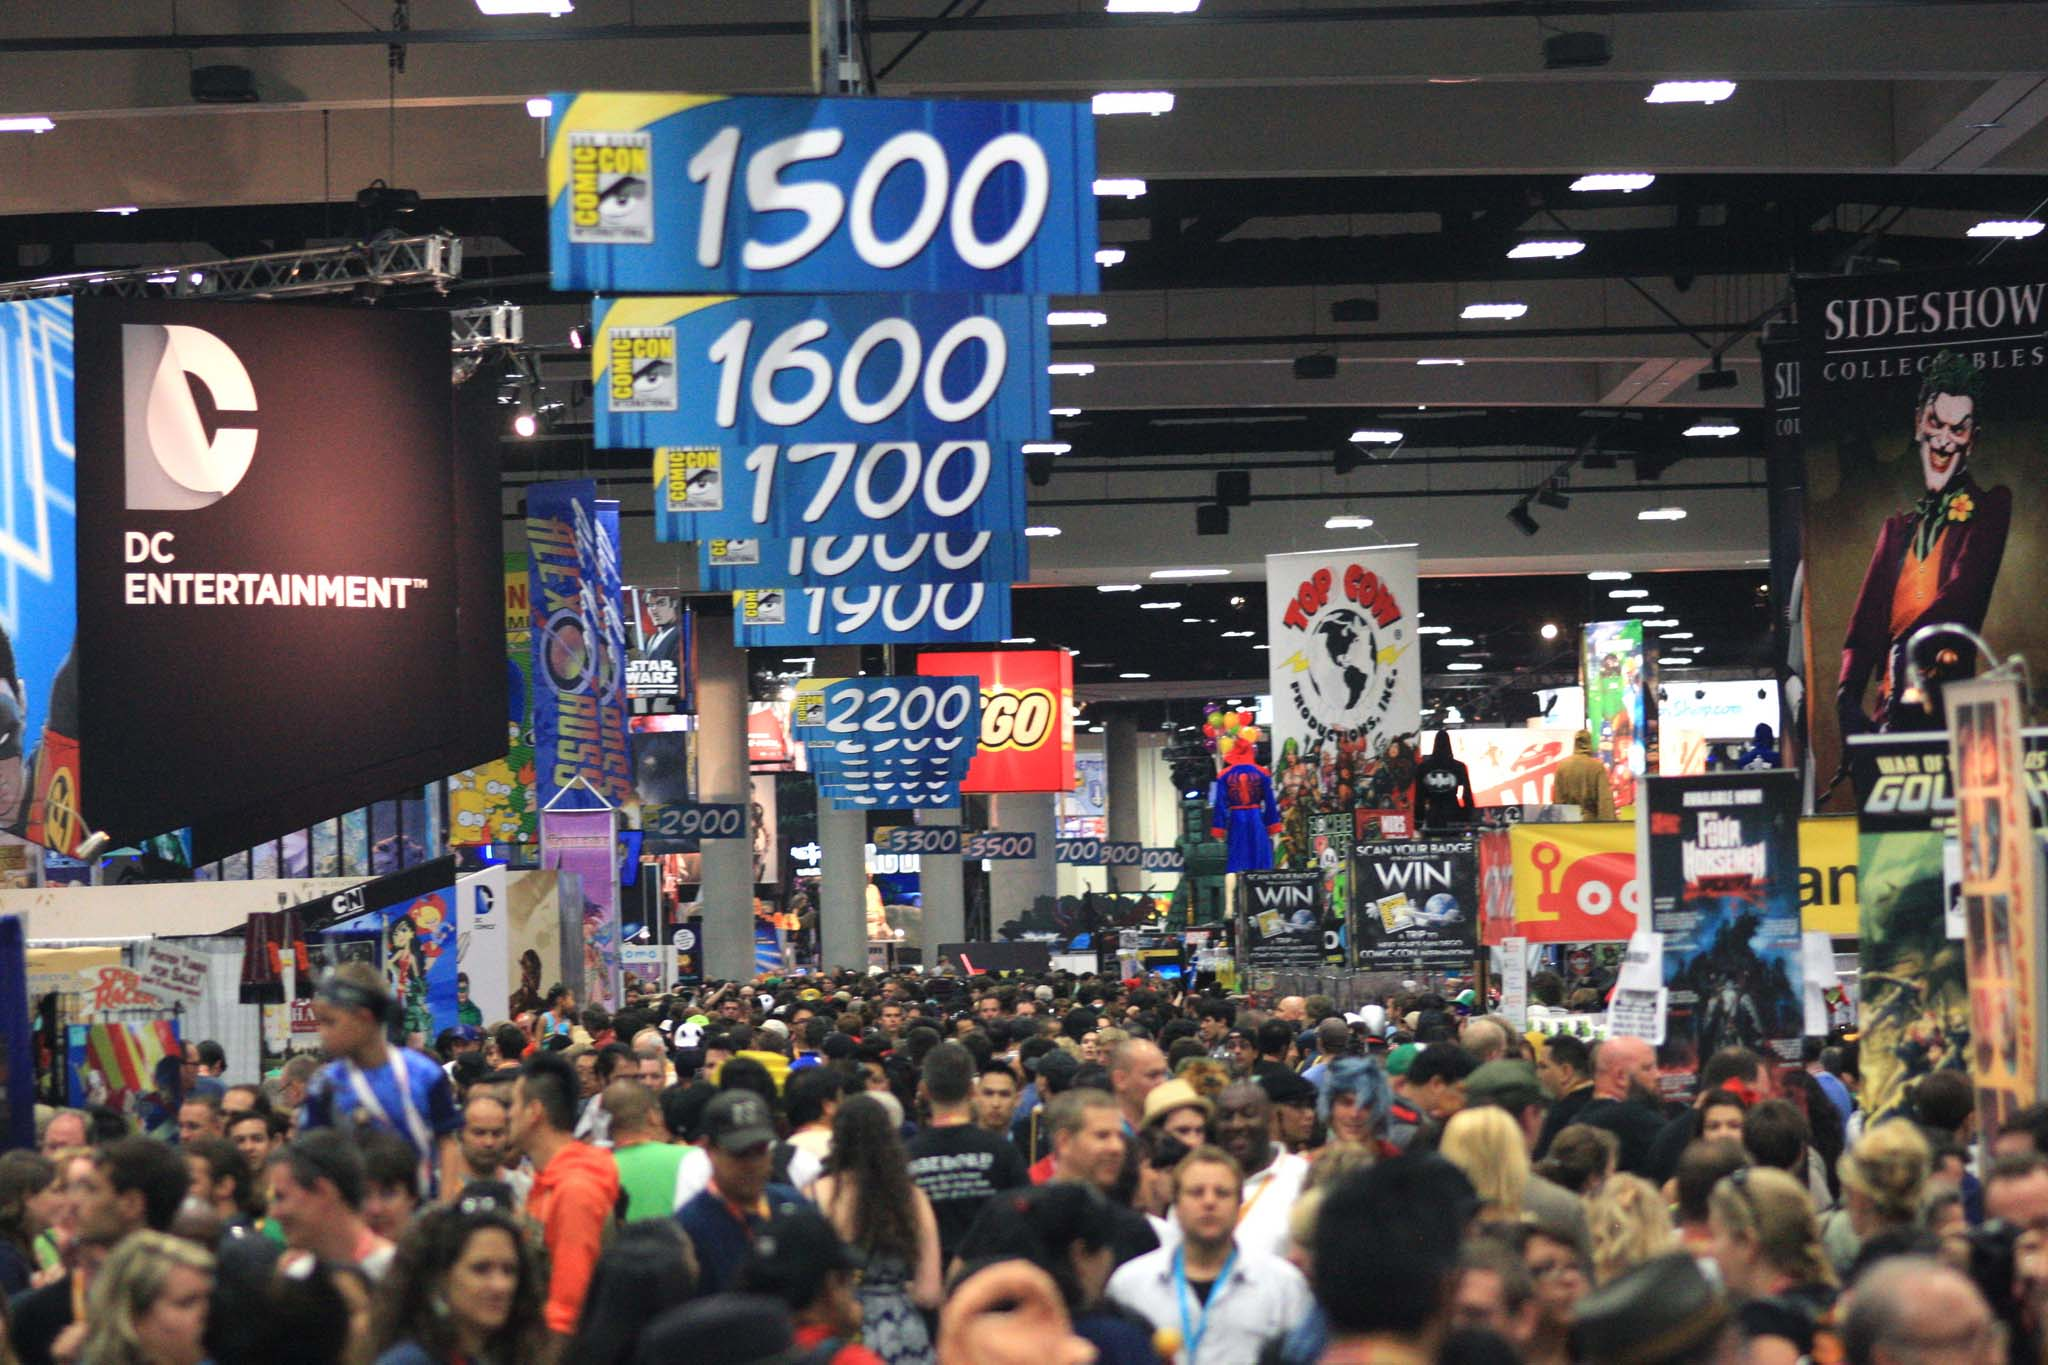 Attendees at Comic Con San Diego via stowawaymag.com